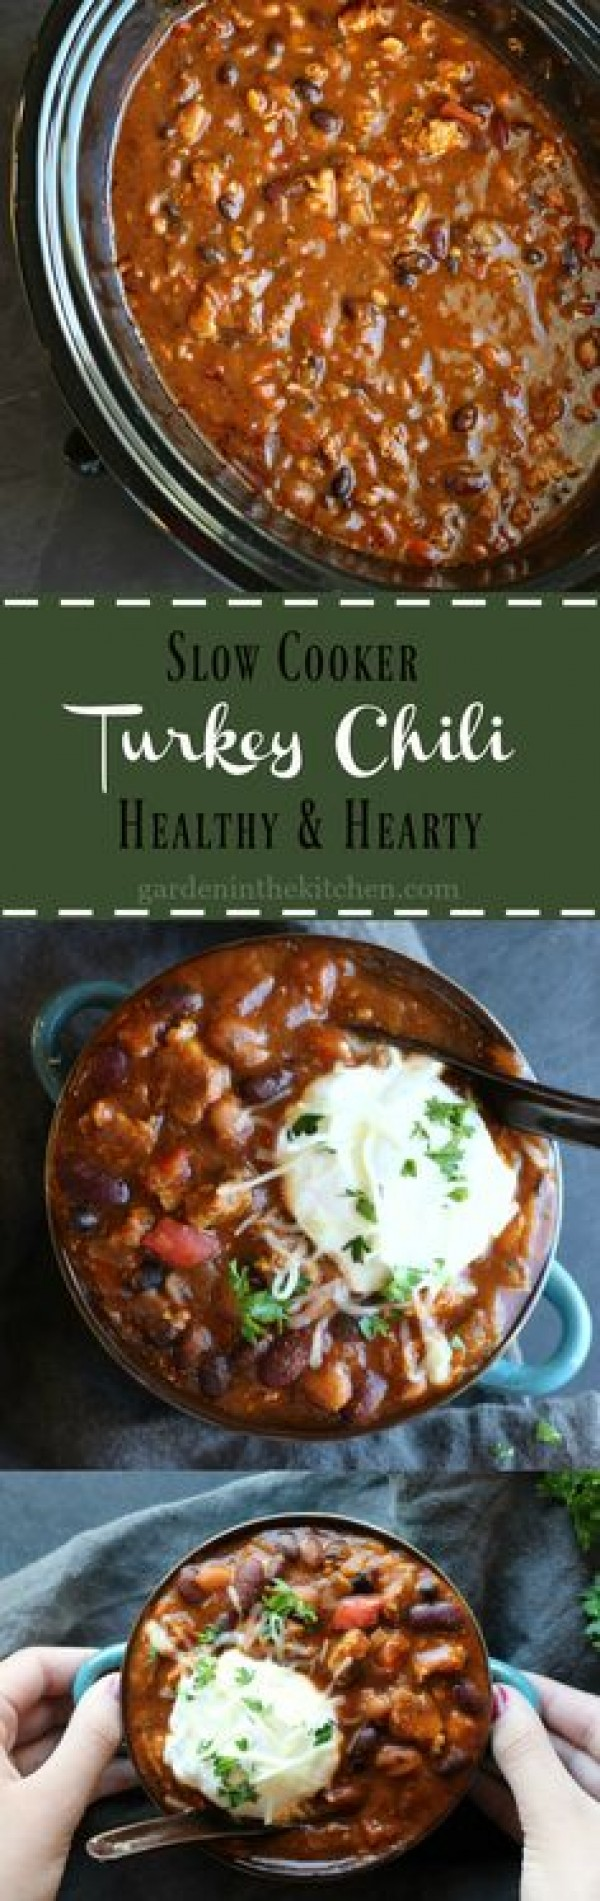 Get the recipe Slow Cooker Turkey Chili @recipes_to_go